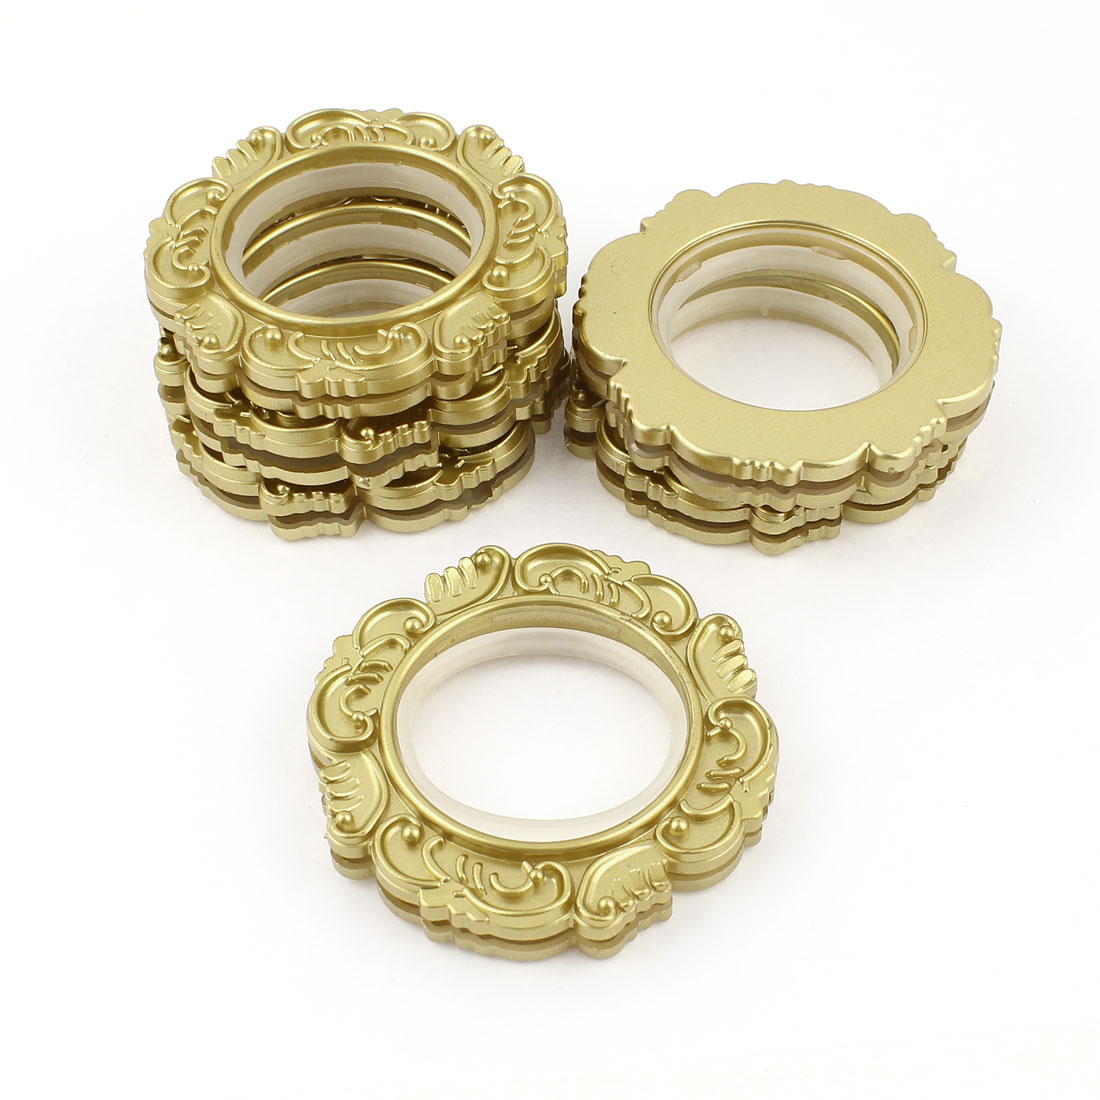 Home Gold Tone Floral Pattern Round Curtain Rings 45mm Diameter 6 Pieces